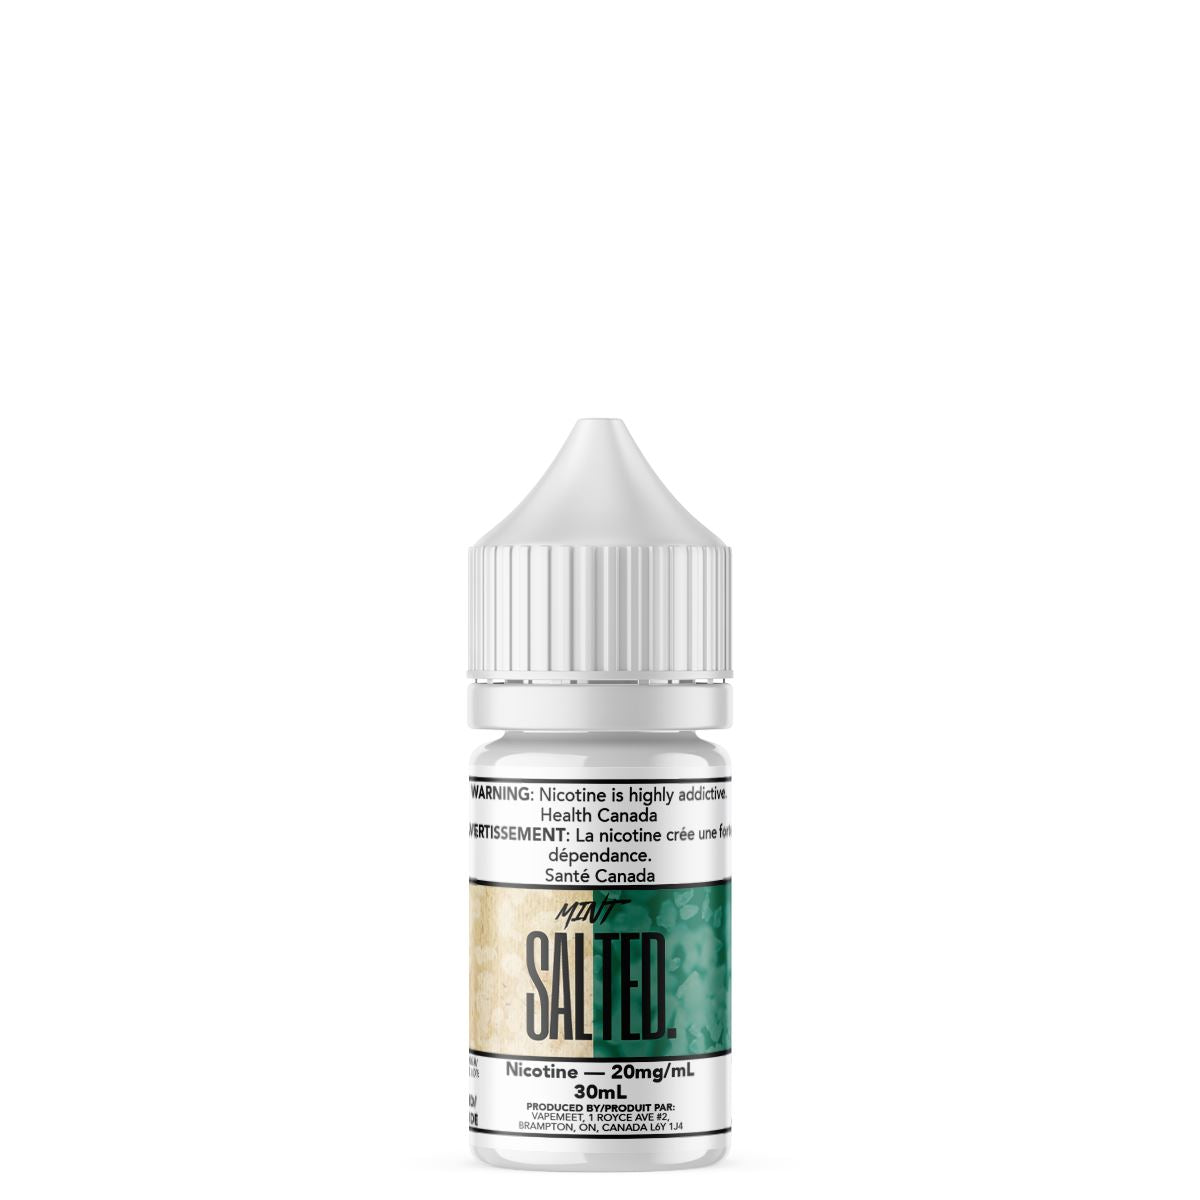 Salted. - Mint E-Liquid Salted. 30mL 20 mg/mL